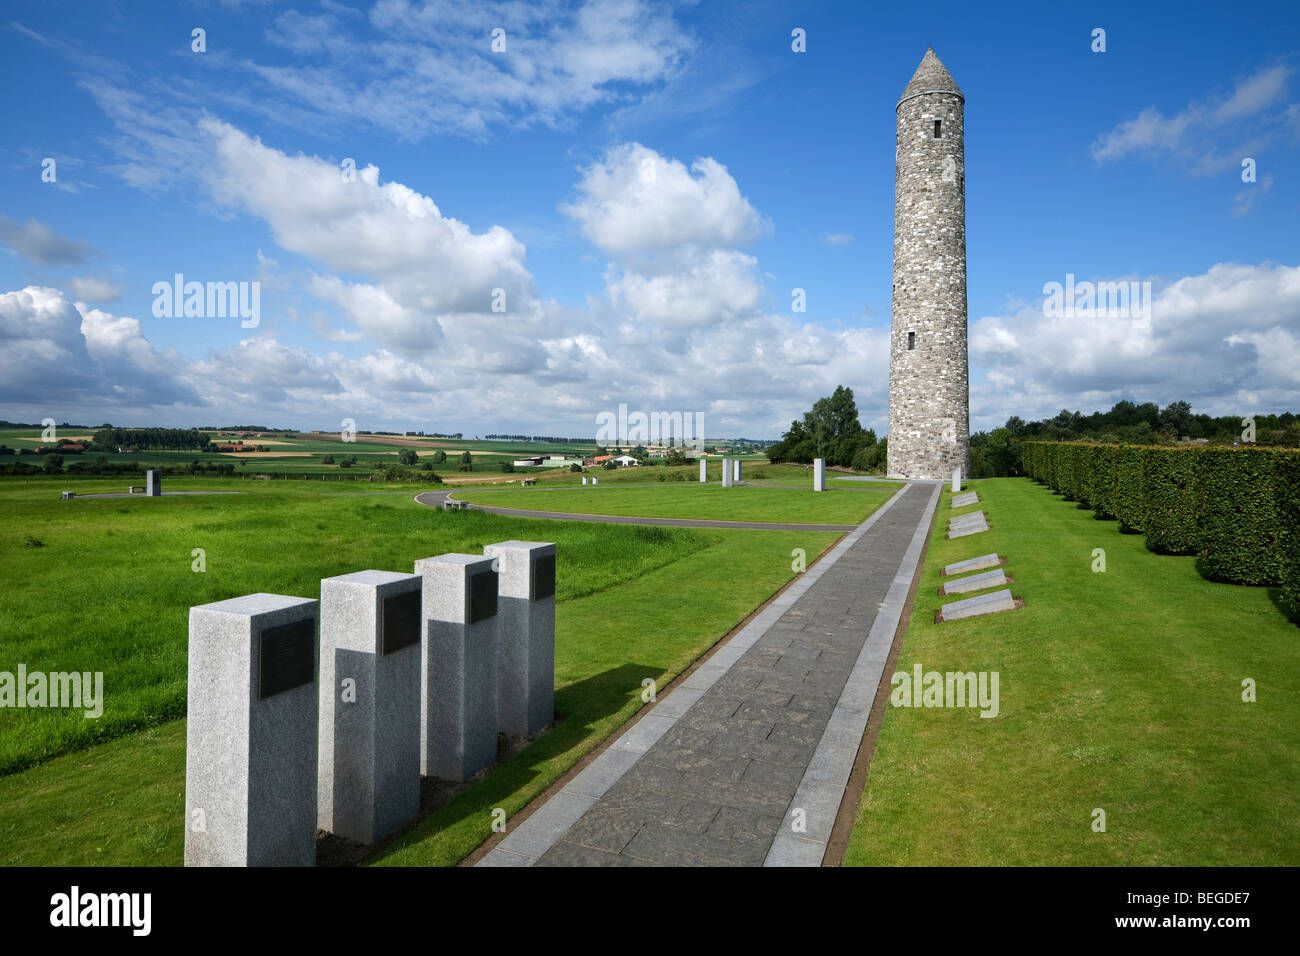 Island of Ireland Peace Park. Memorial with tower commemorating First World War. - Stock Image